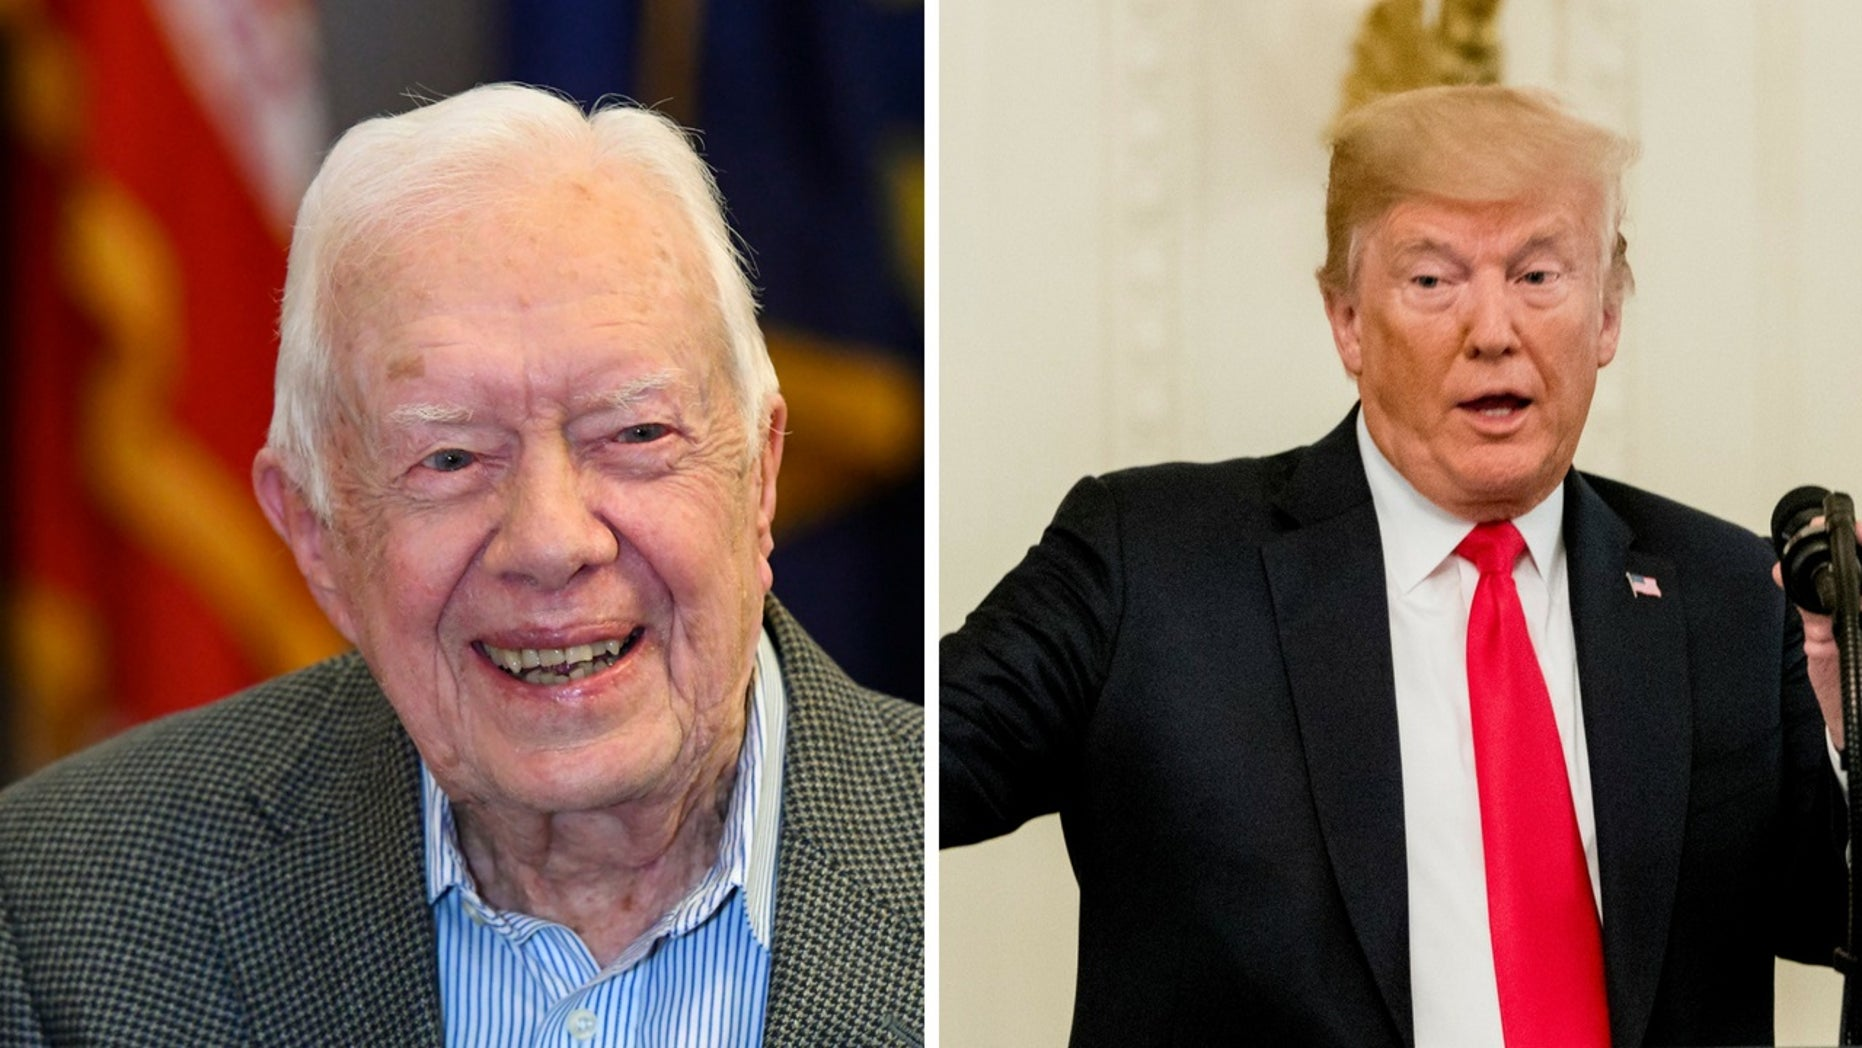 "Jimmy Carter criticized President Trump in a recent interview, saying he thought the commander in chief was a ""disaster in human rights and taking care of people and treating people equal."""